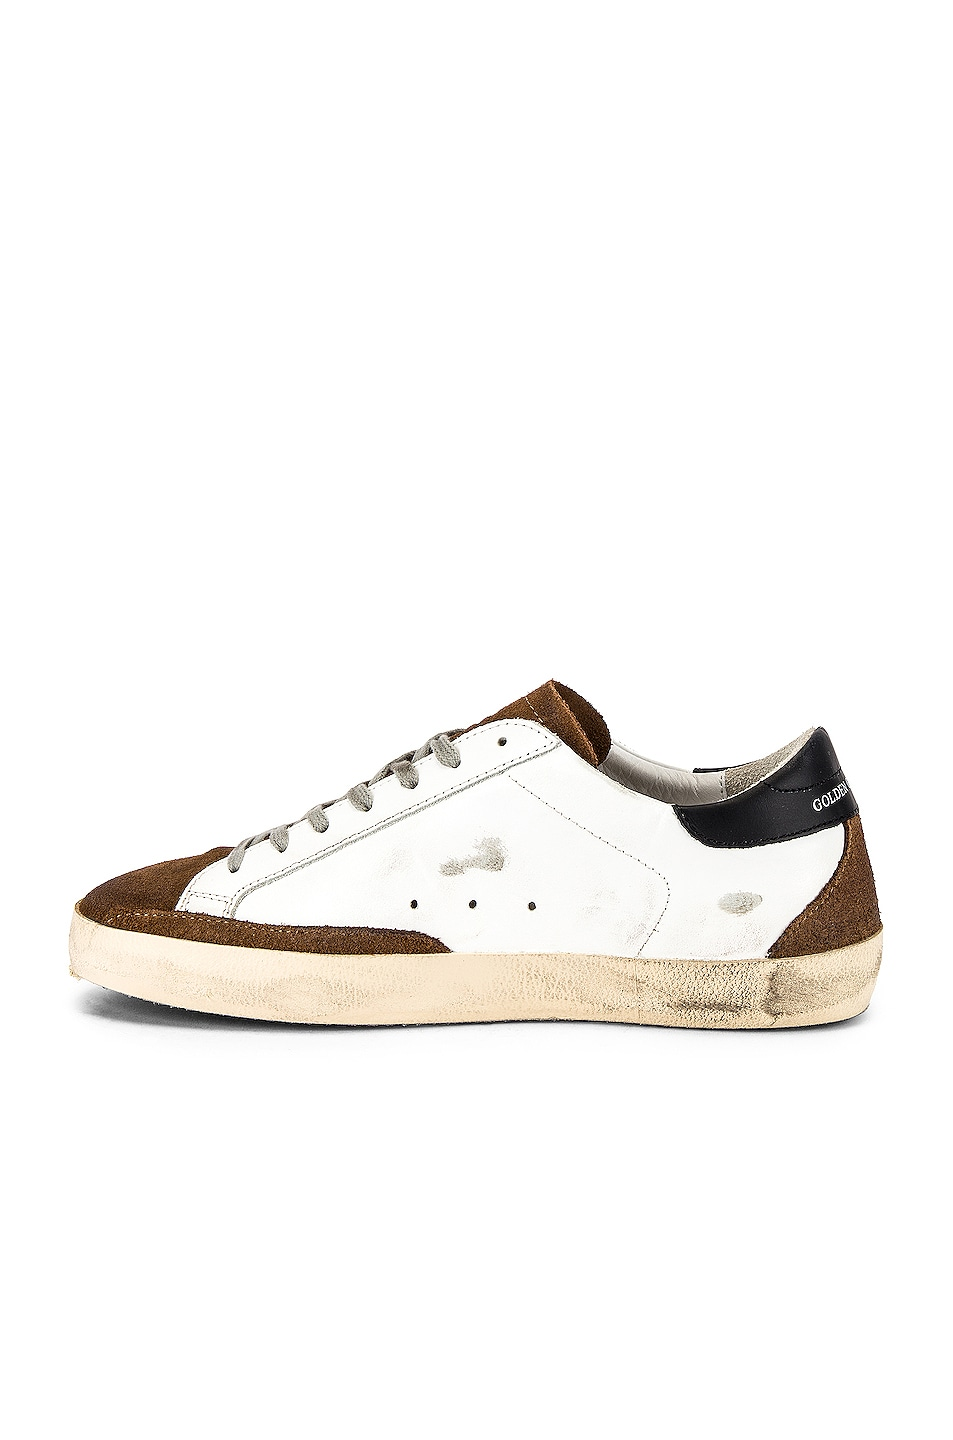 Image 5 of Golden Goose Superstar Sneaker in White Mud Suede & Ice Star